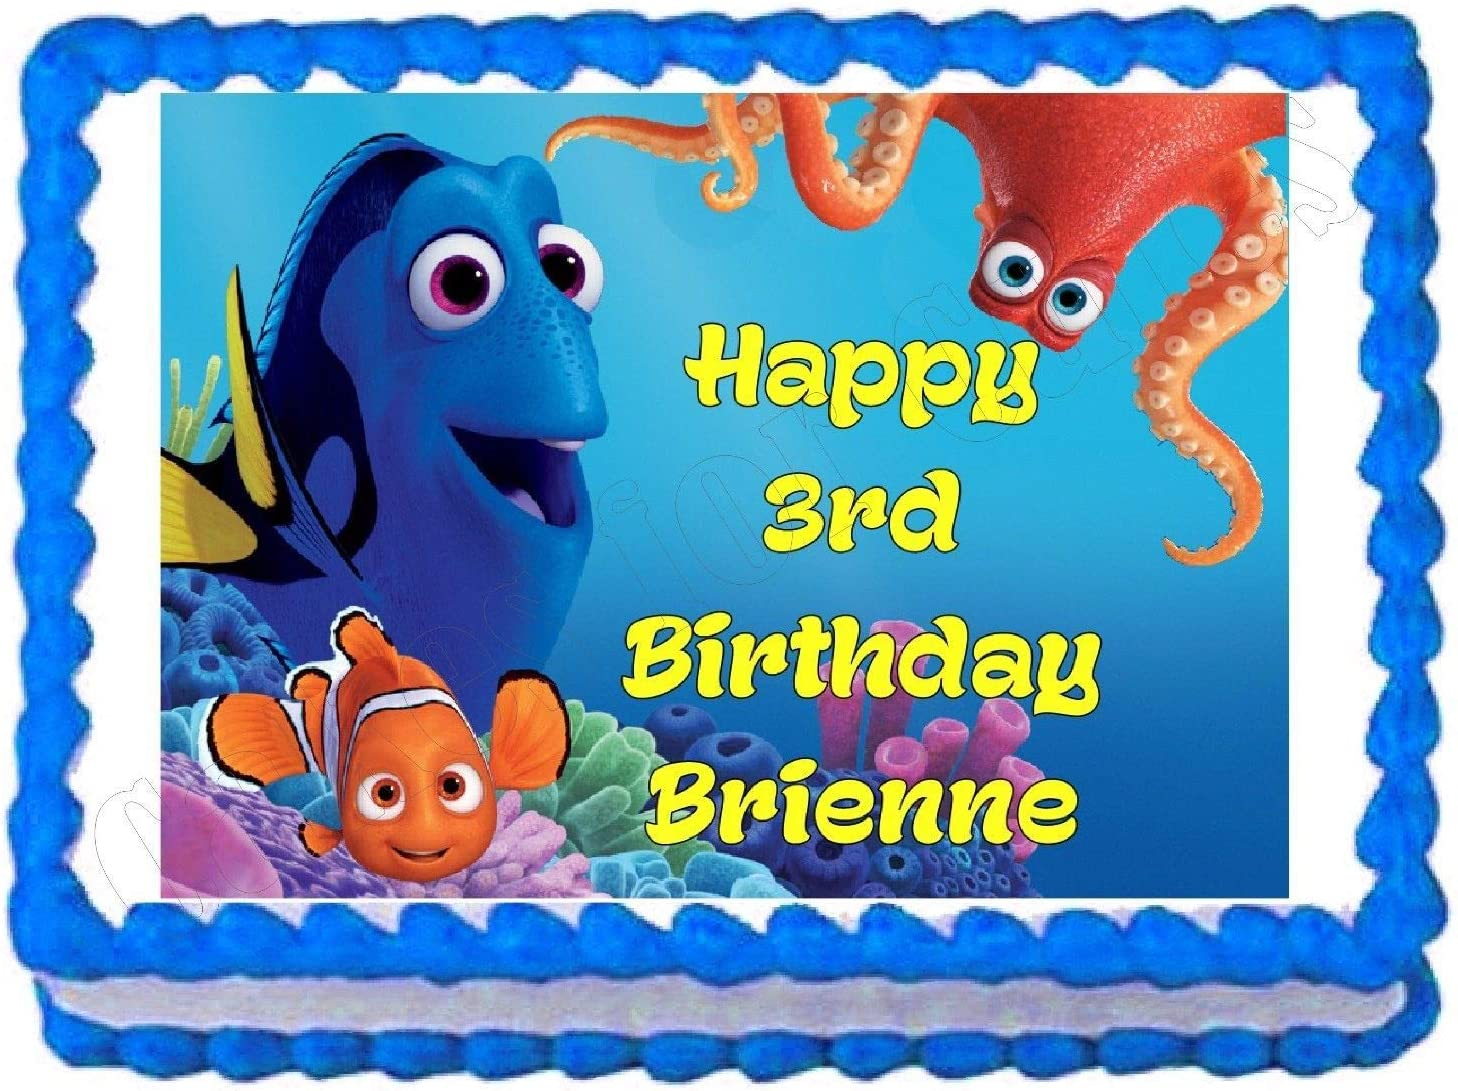 personalized free! Finding Nemo edible cake image topper party decoration